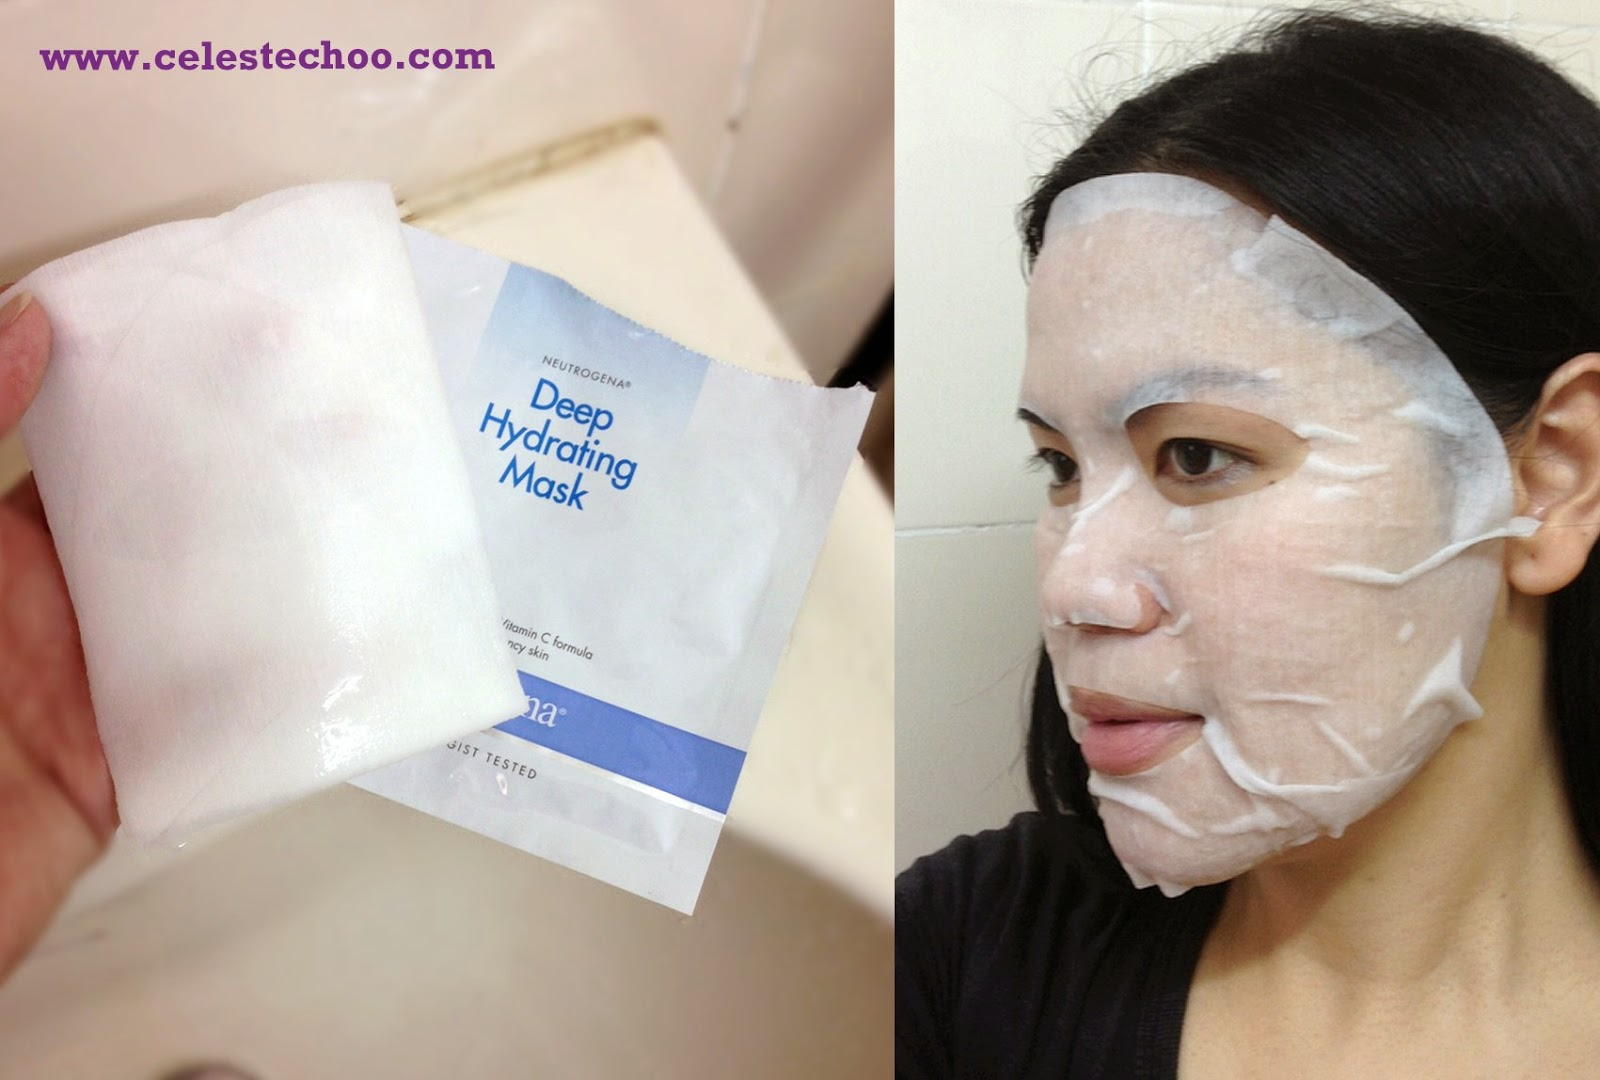 image-neutrogena-deep-hydrating-mask-product-review